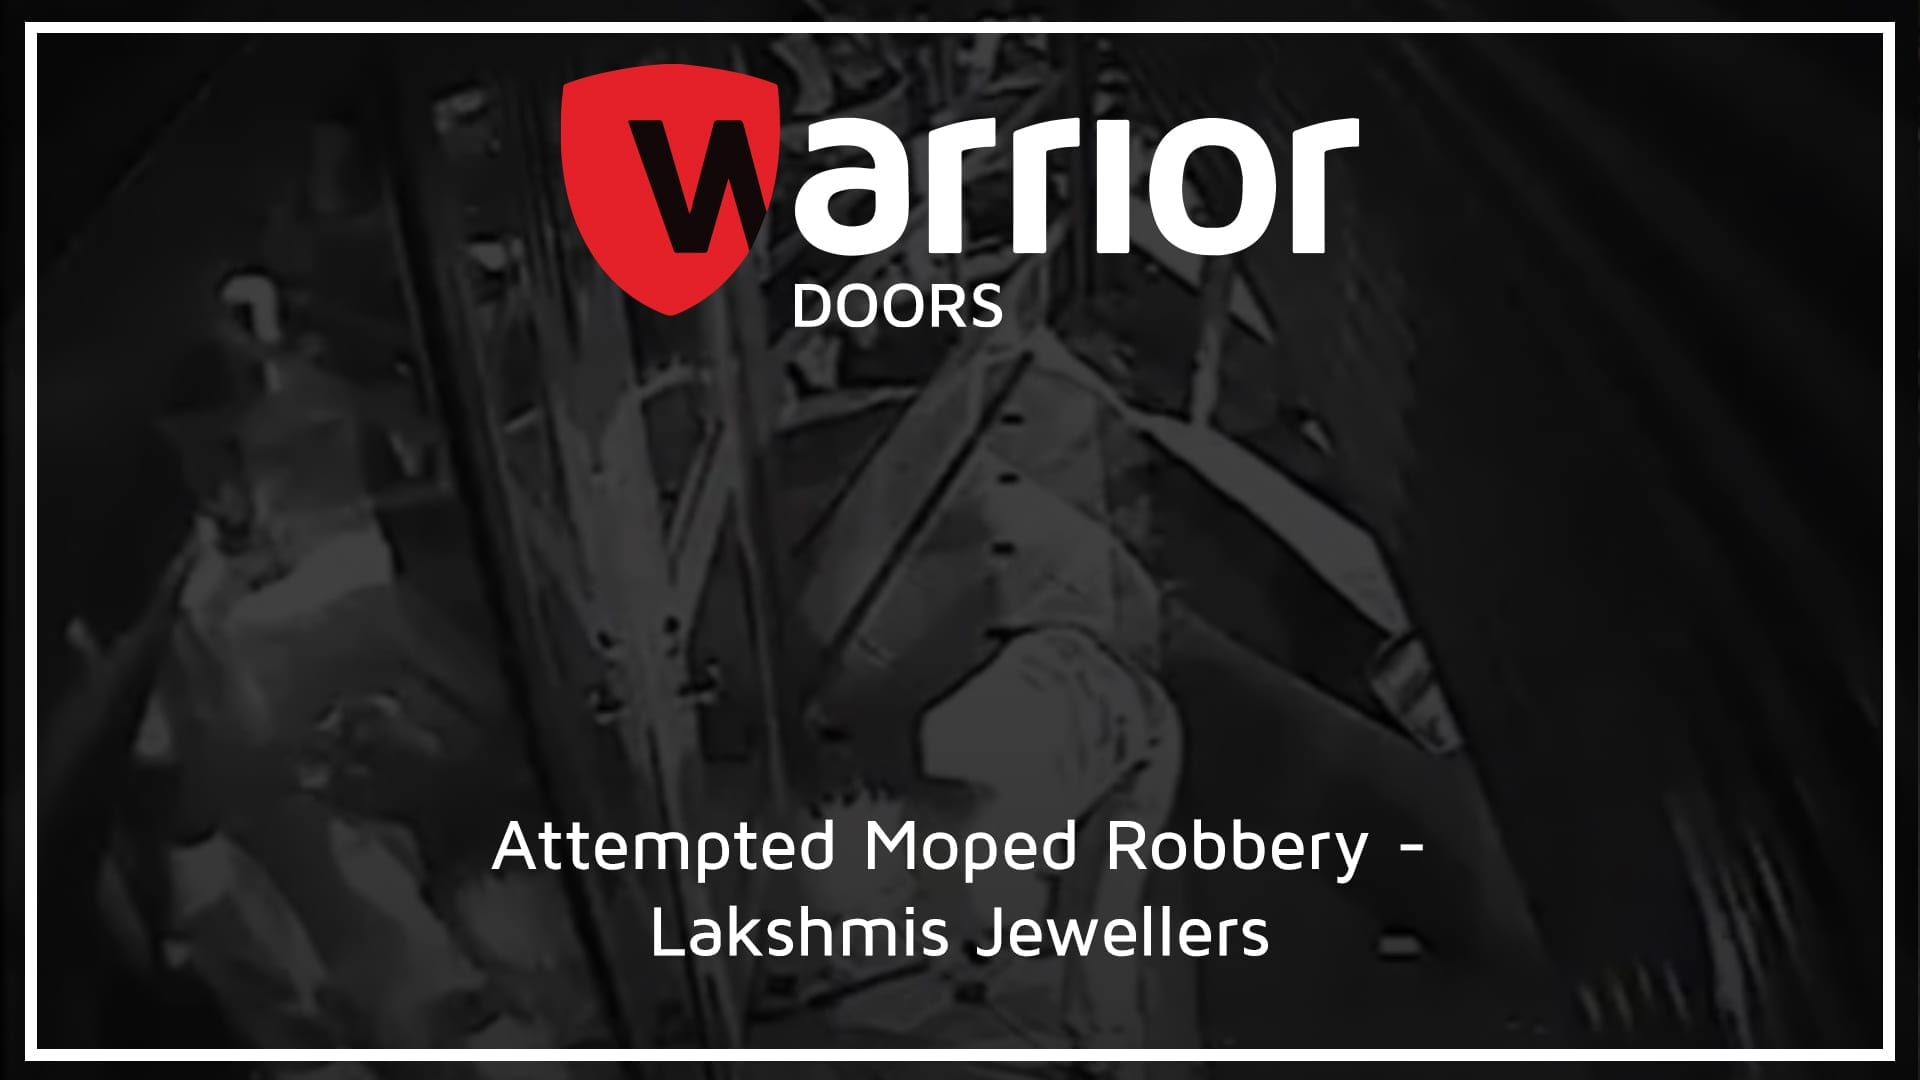 """Robbers attempting to break into a shop with Warrior Logo and text reading """"Attempted Moped Robbery - Lakshmis Jewellers"""""""